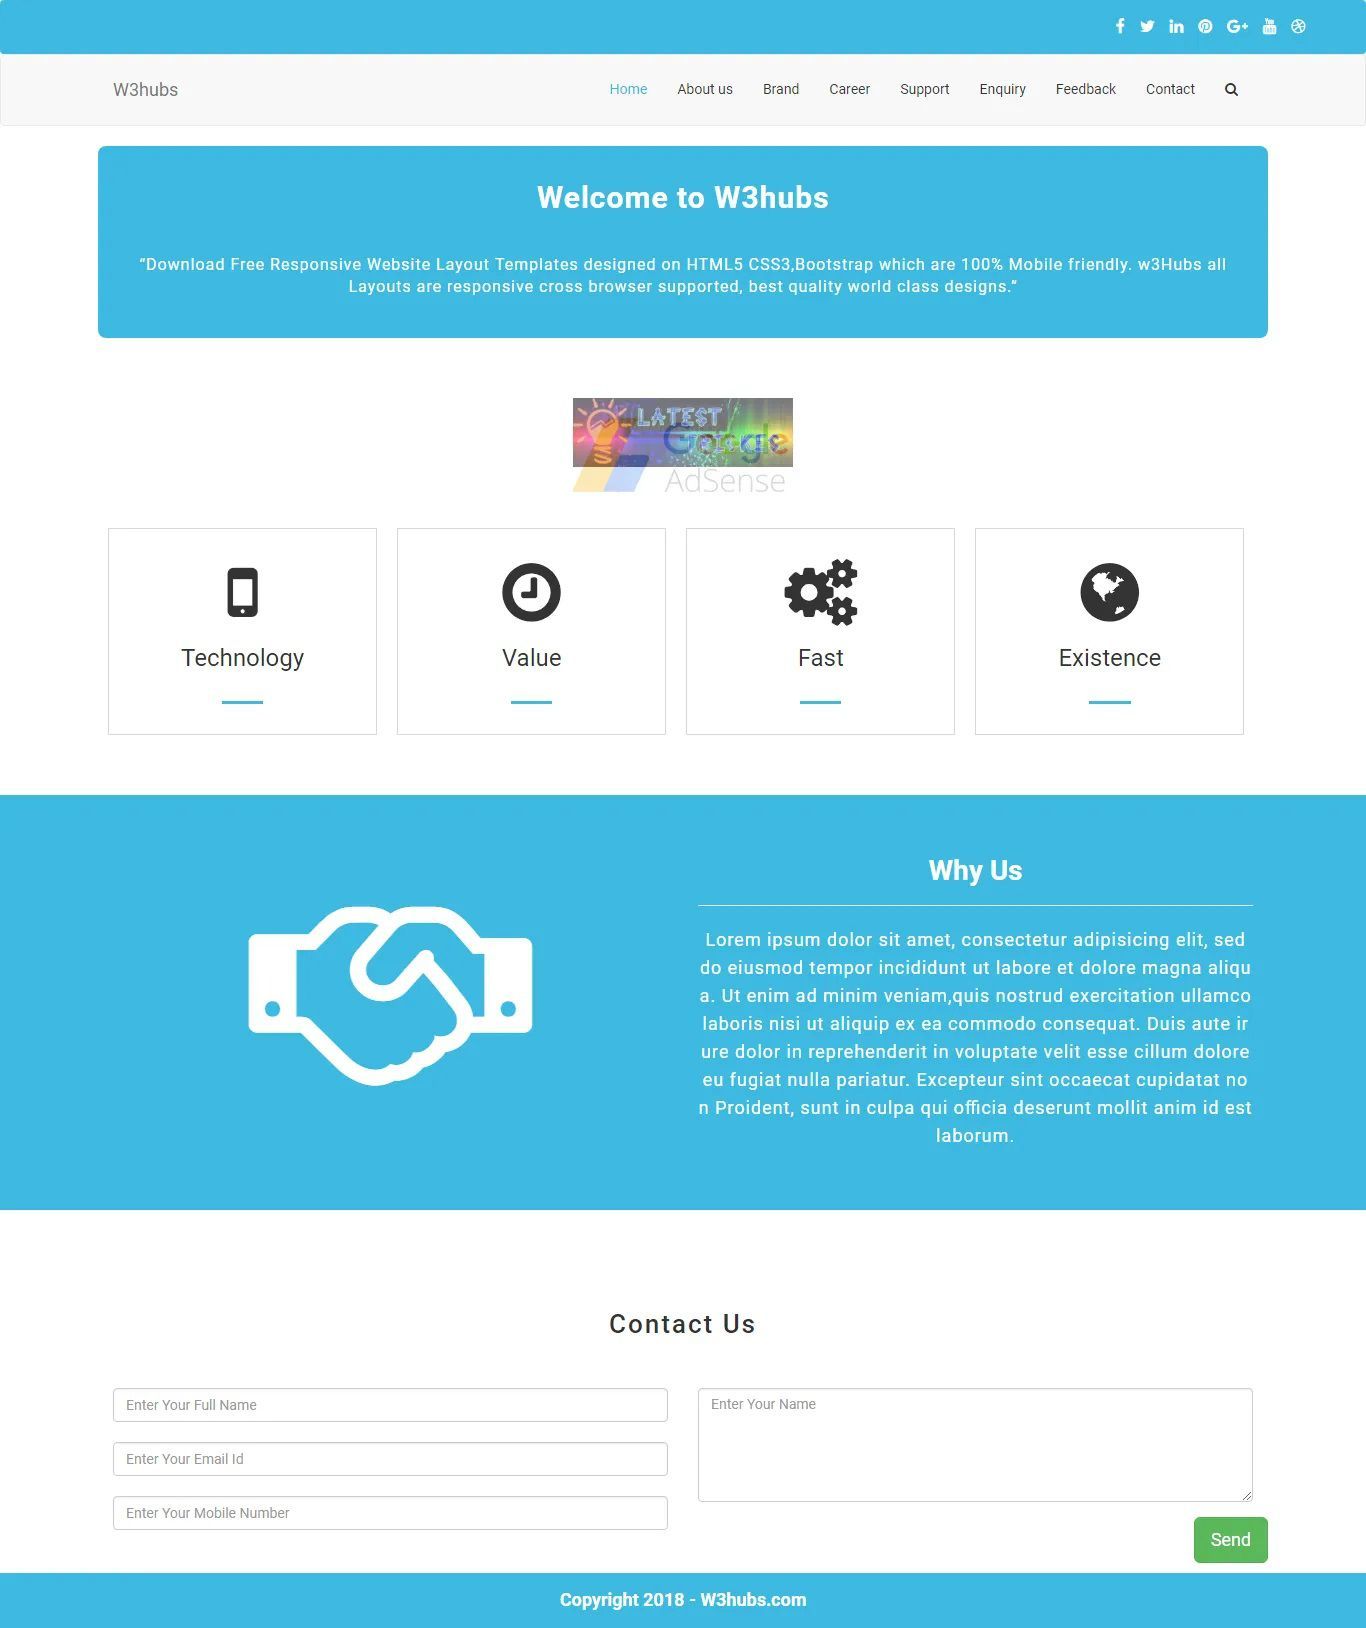 007 Unbelievable Free Php Website Template Photo  With Admin Panel Download Source Code And Database CmFull